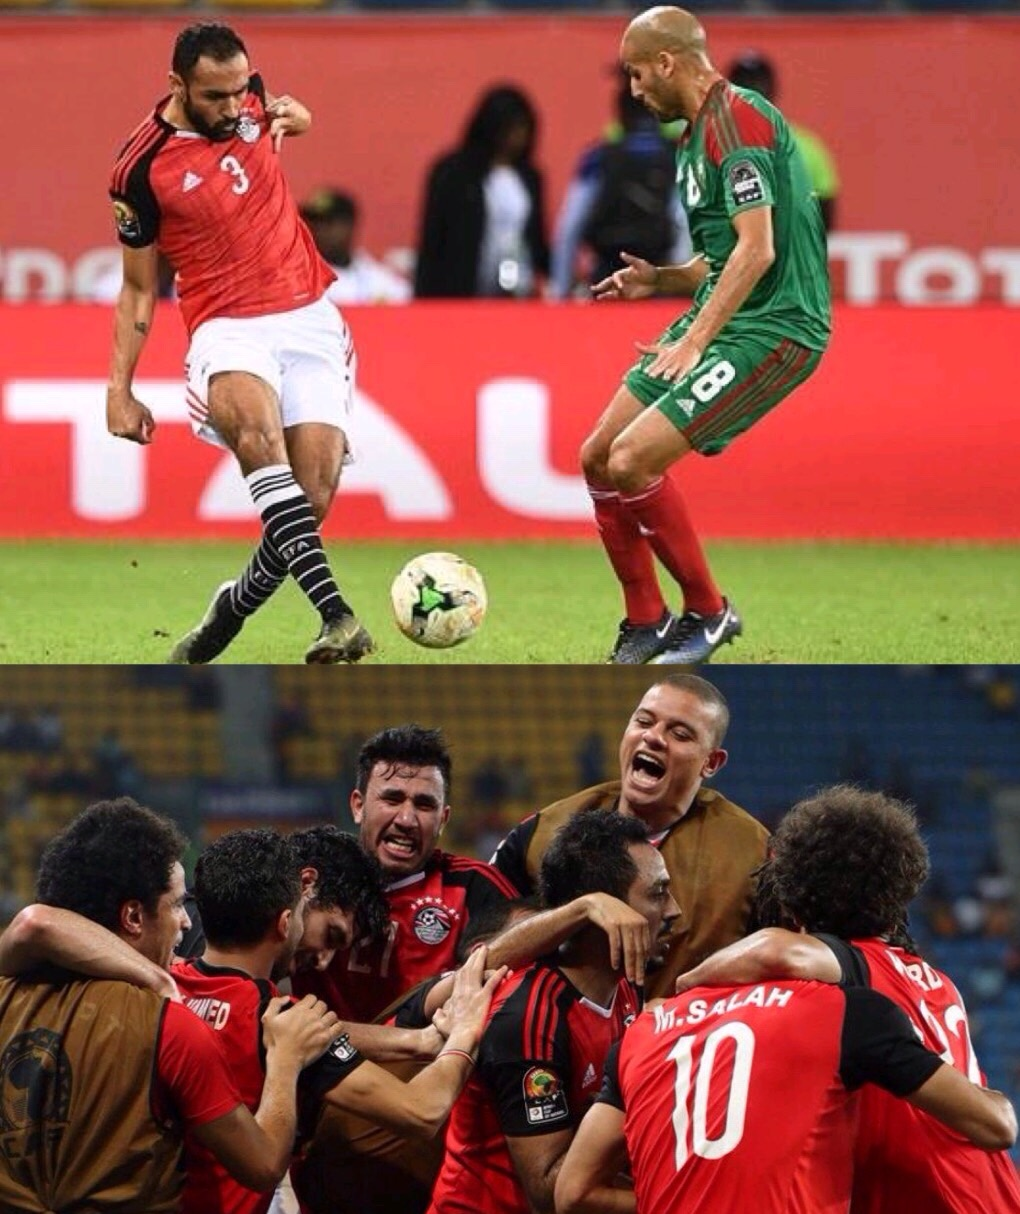 AFCON 2017: Egypt Beat Morocco To The Semis Ticket, End 31 Year Jinx